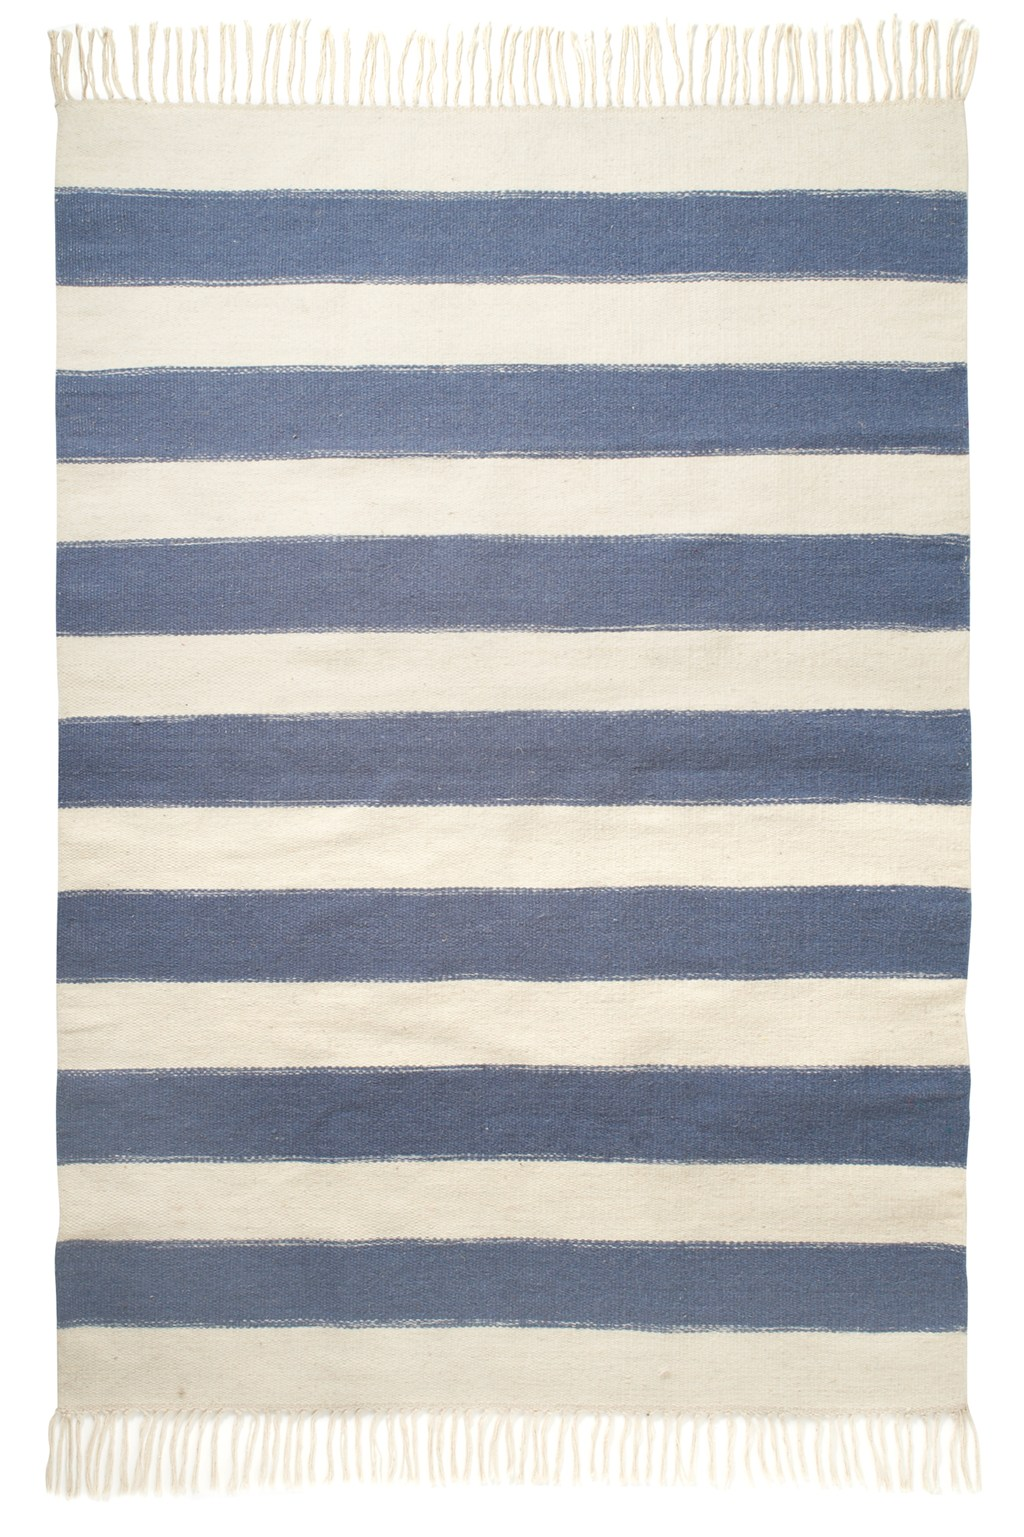 blue striped rug images  reverse search - filename dd